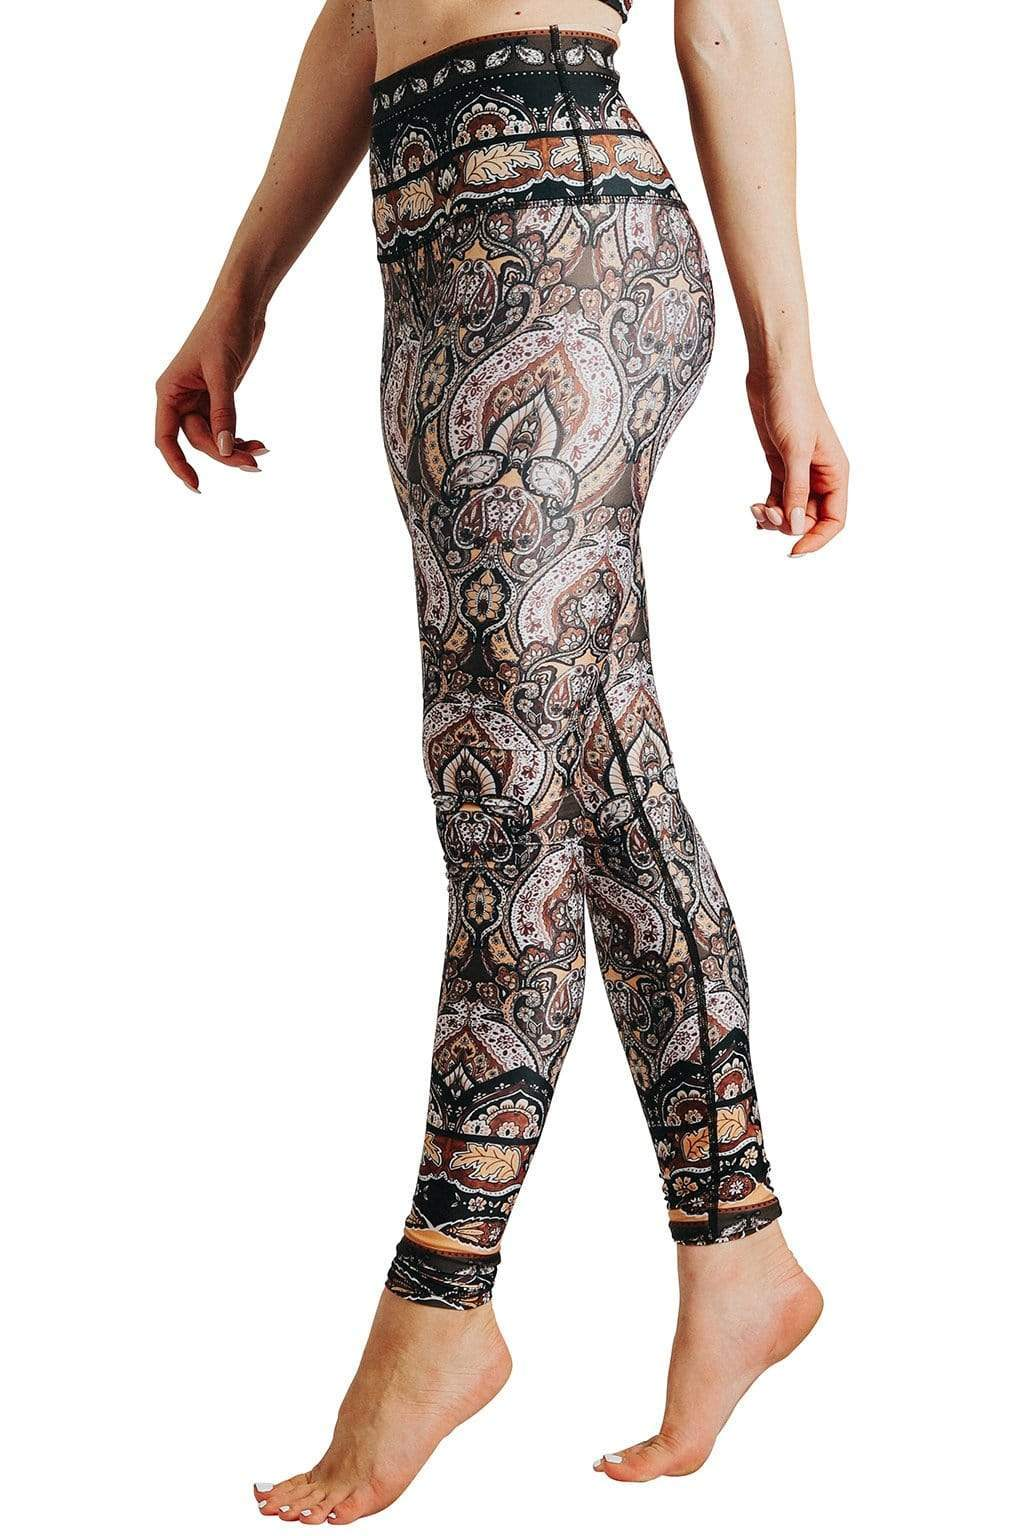 Yoga Democracy  Espresso Yourself Printed Yoga Leggings